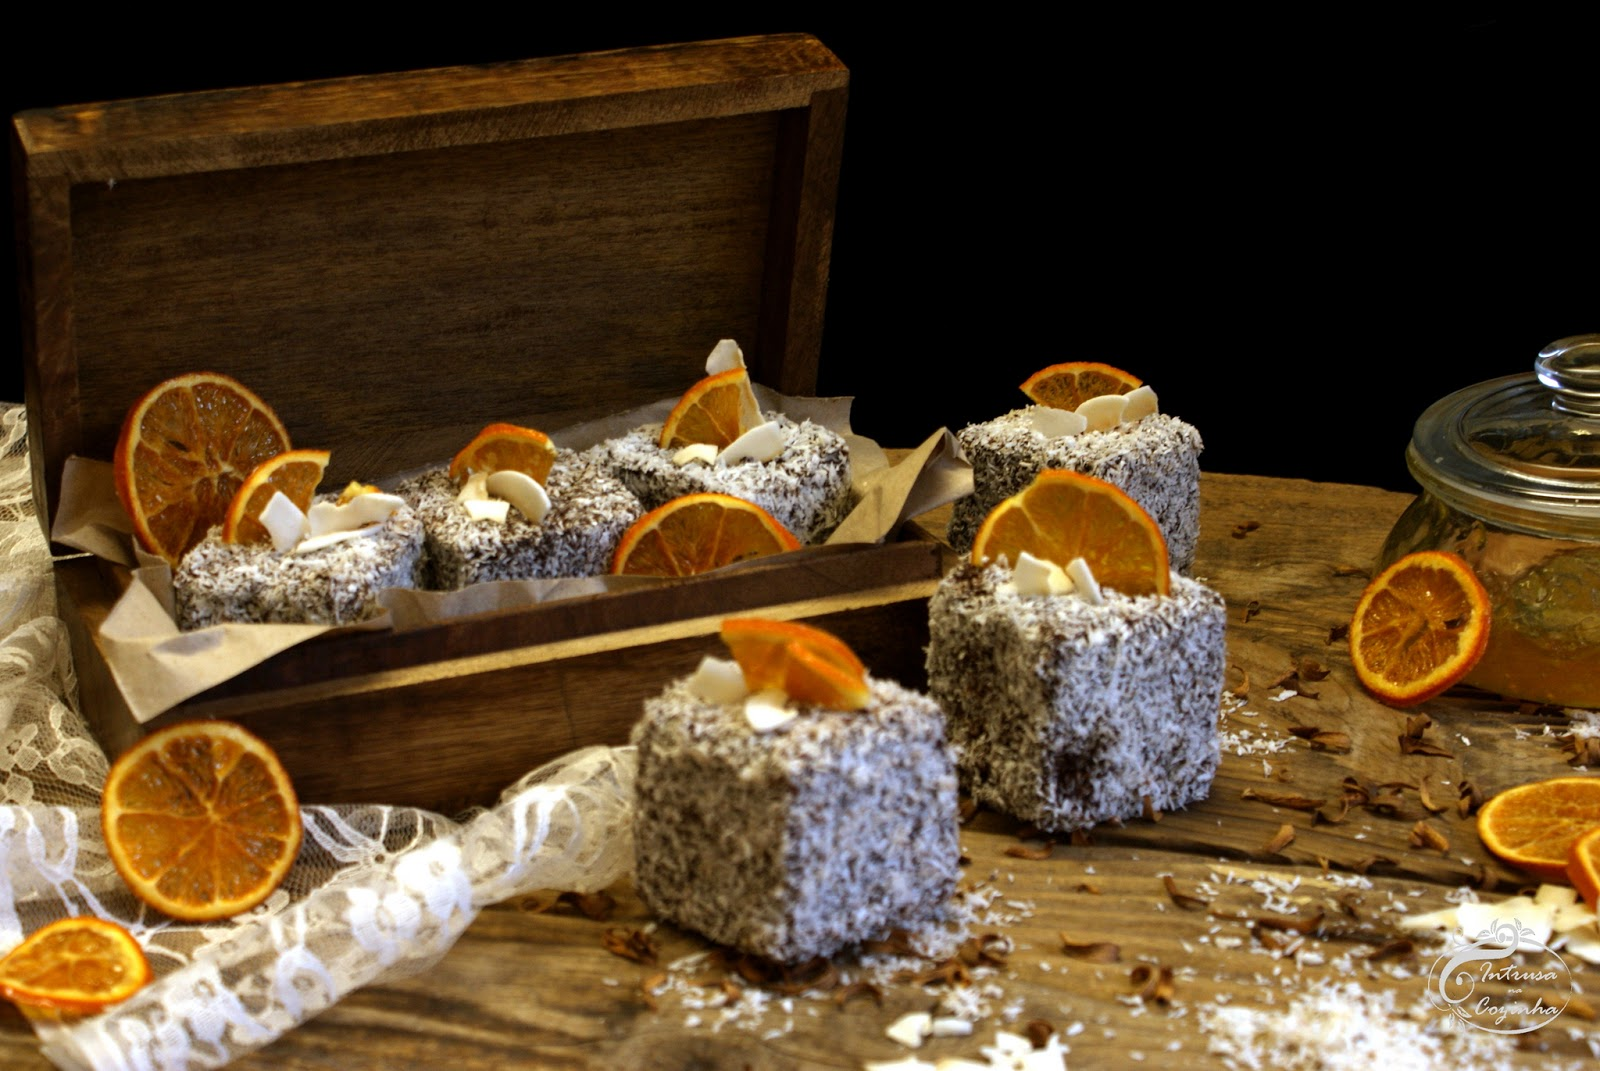 Lamingtons de Laranja {Orange Lamingtons}